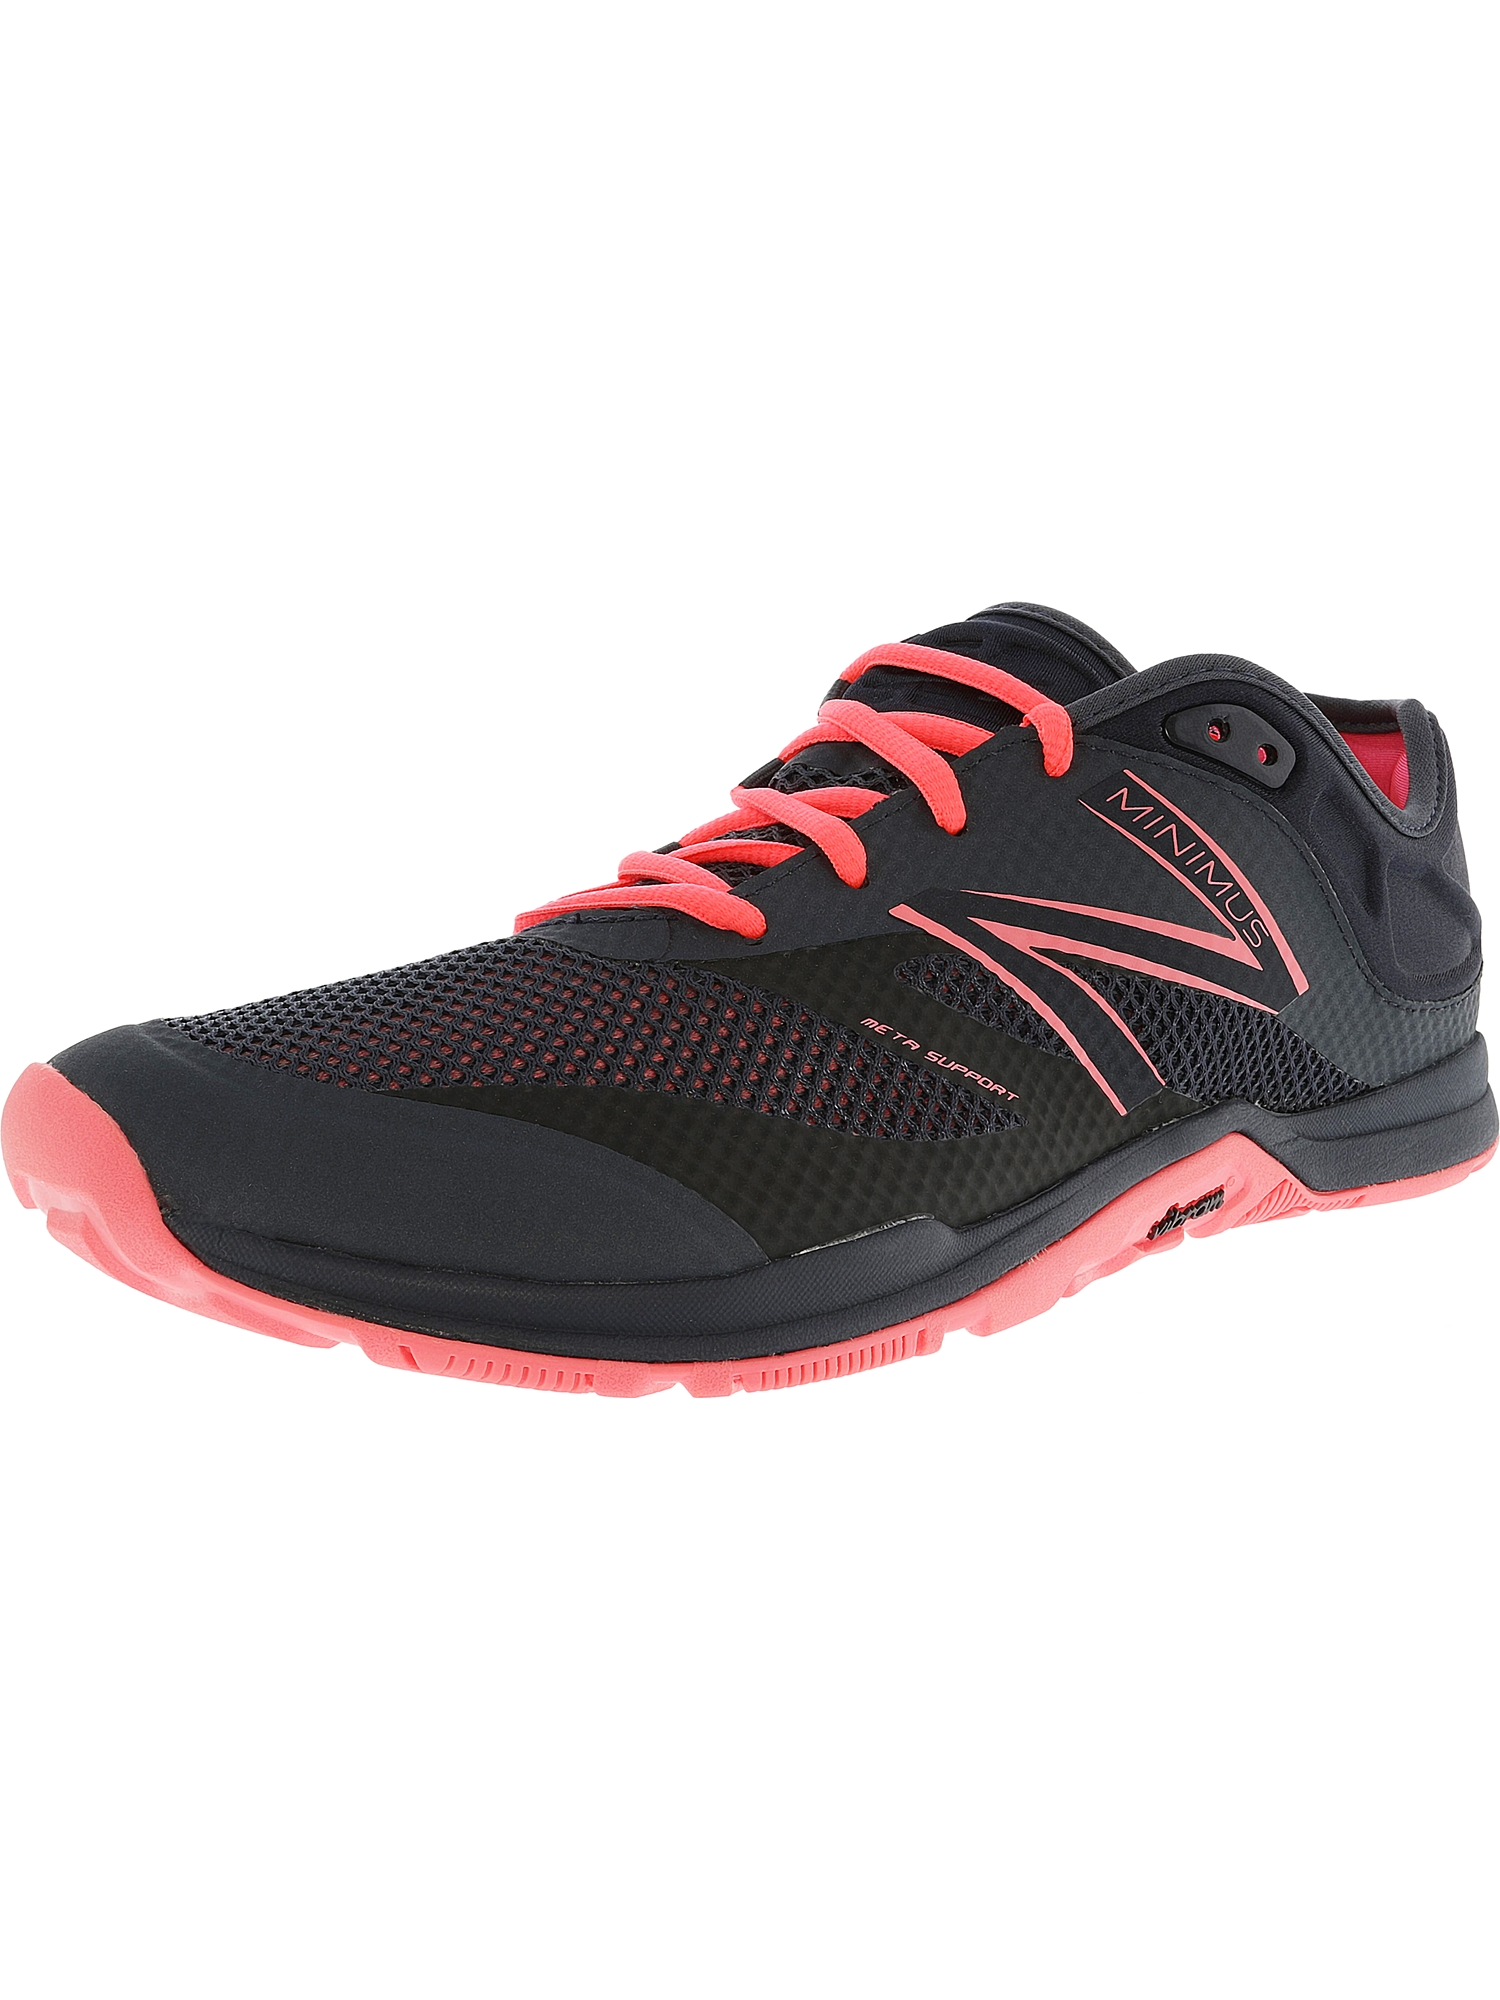 New Balance Women's Wx20 Pg5 Ankle-High Running Shoe - 9.5M